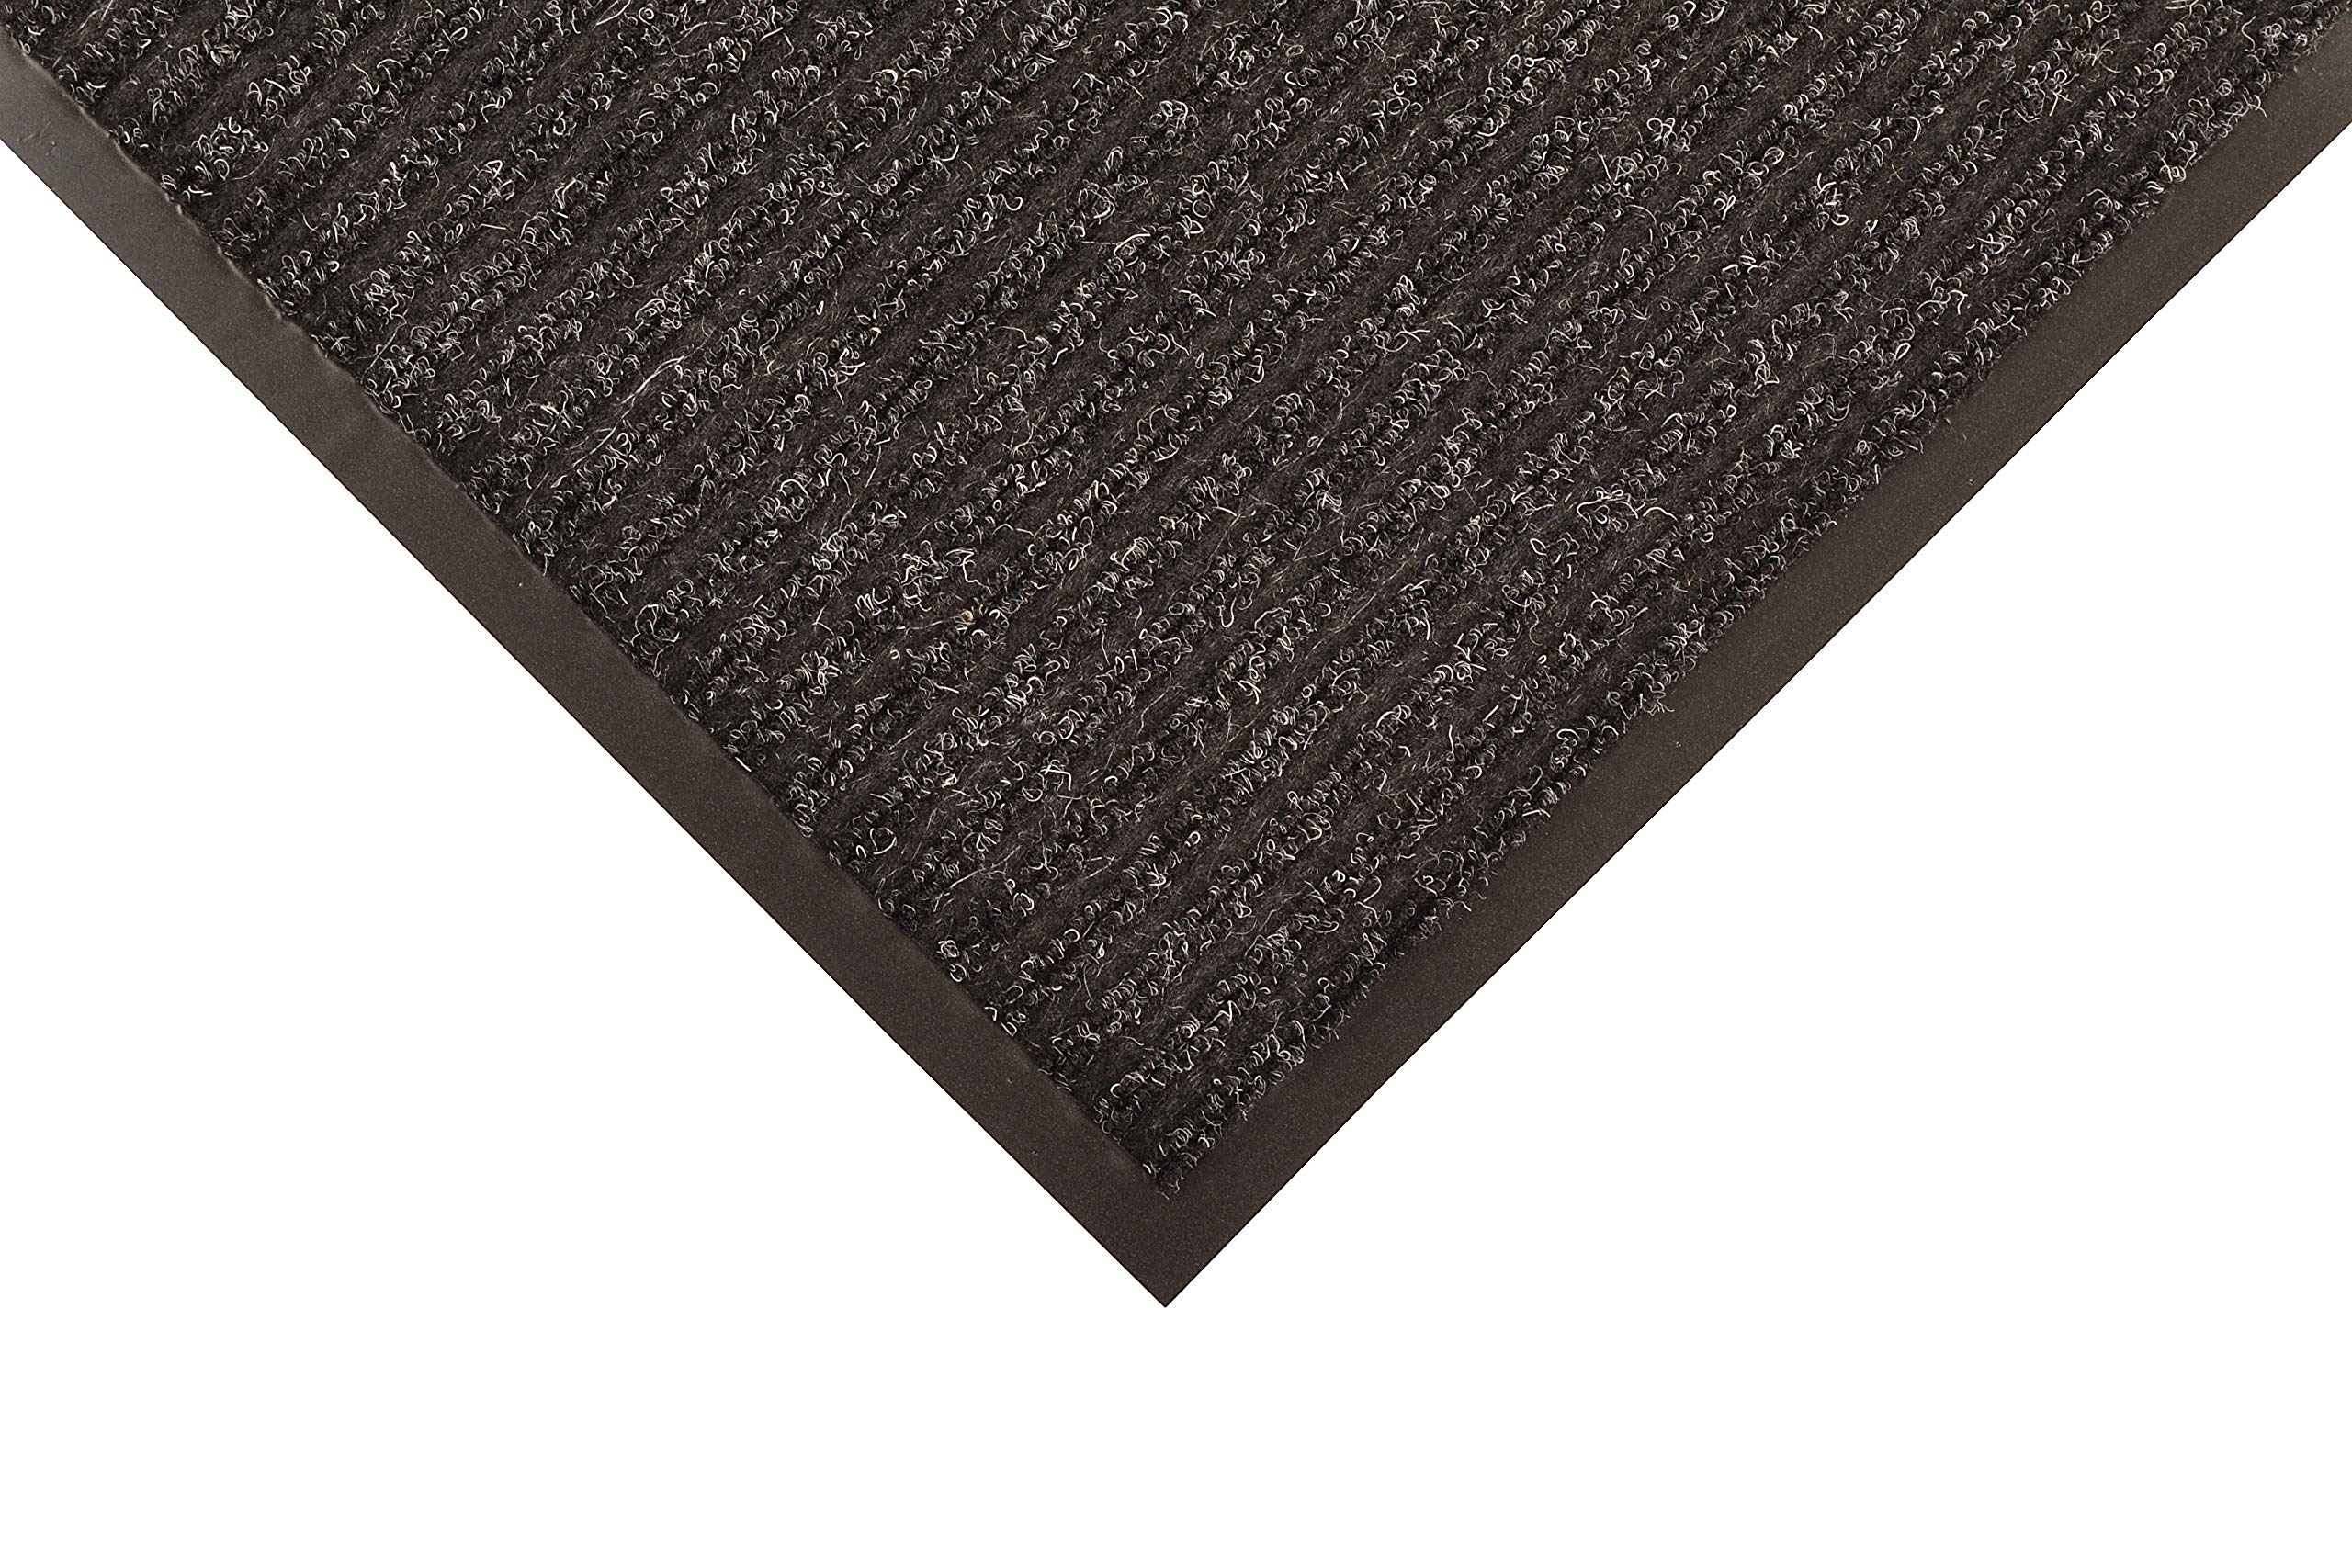 Notrax 117 Heritage Rib Entrance Mat, for Home or Office, 4' X 6' Charcoal by NoTrax Floor Matting